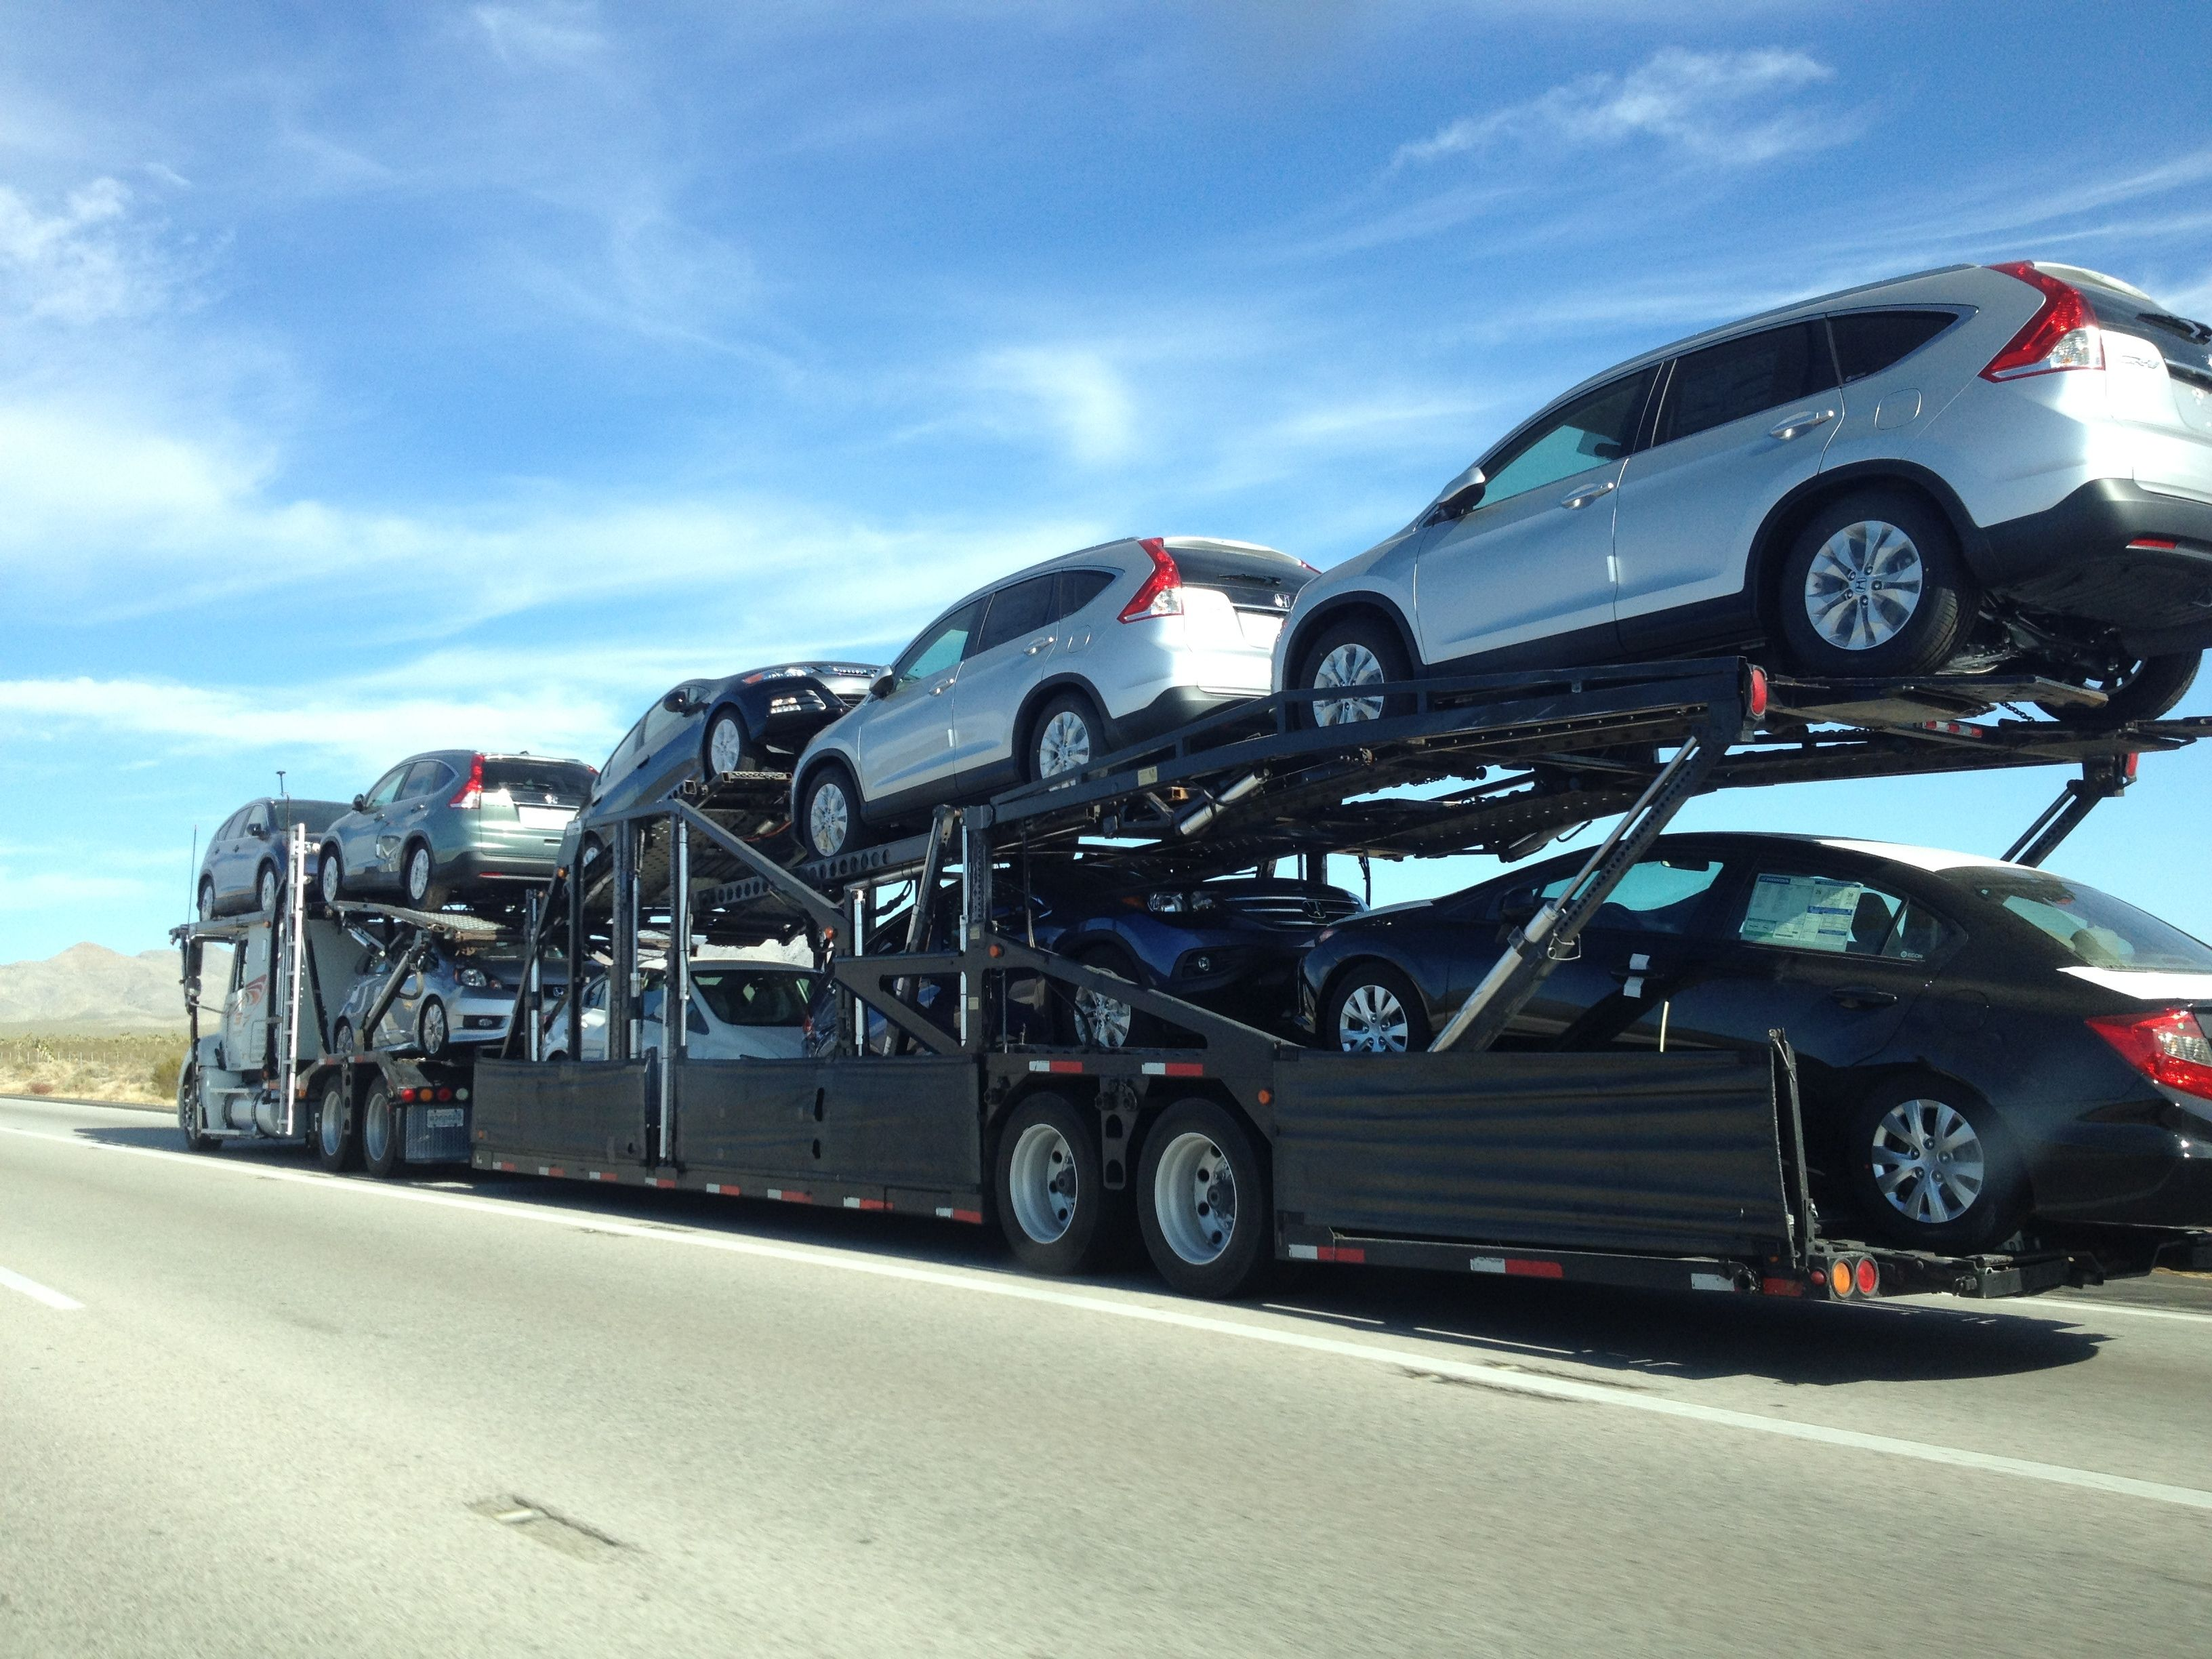 Auto Hauler Heading To Las Vegas From San Diego Reliable Cars